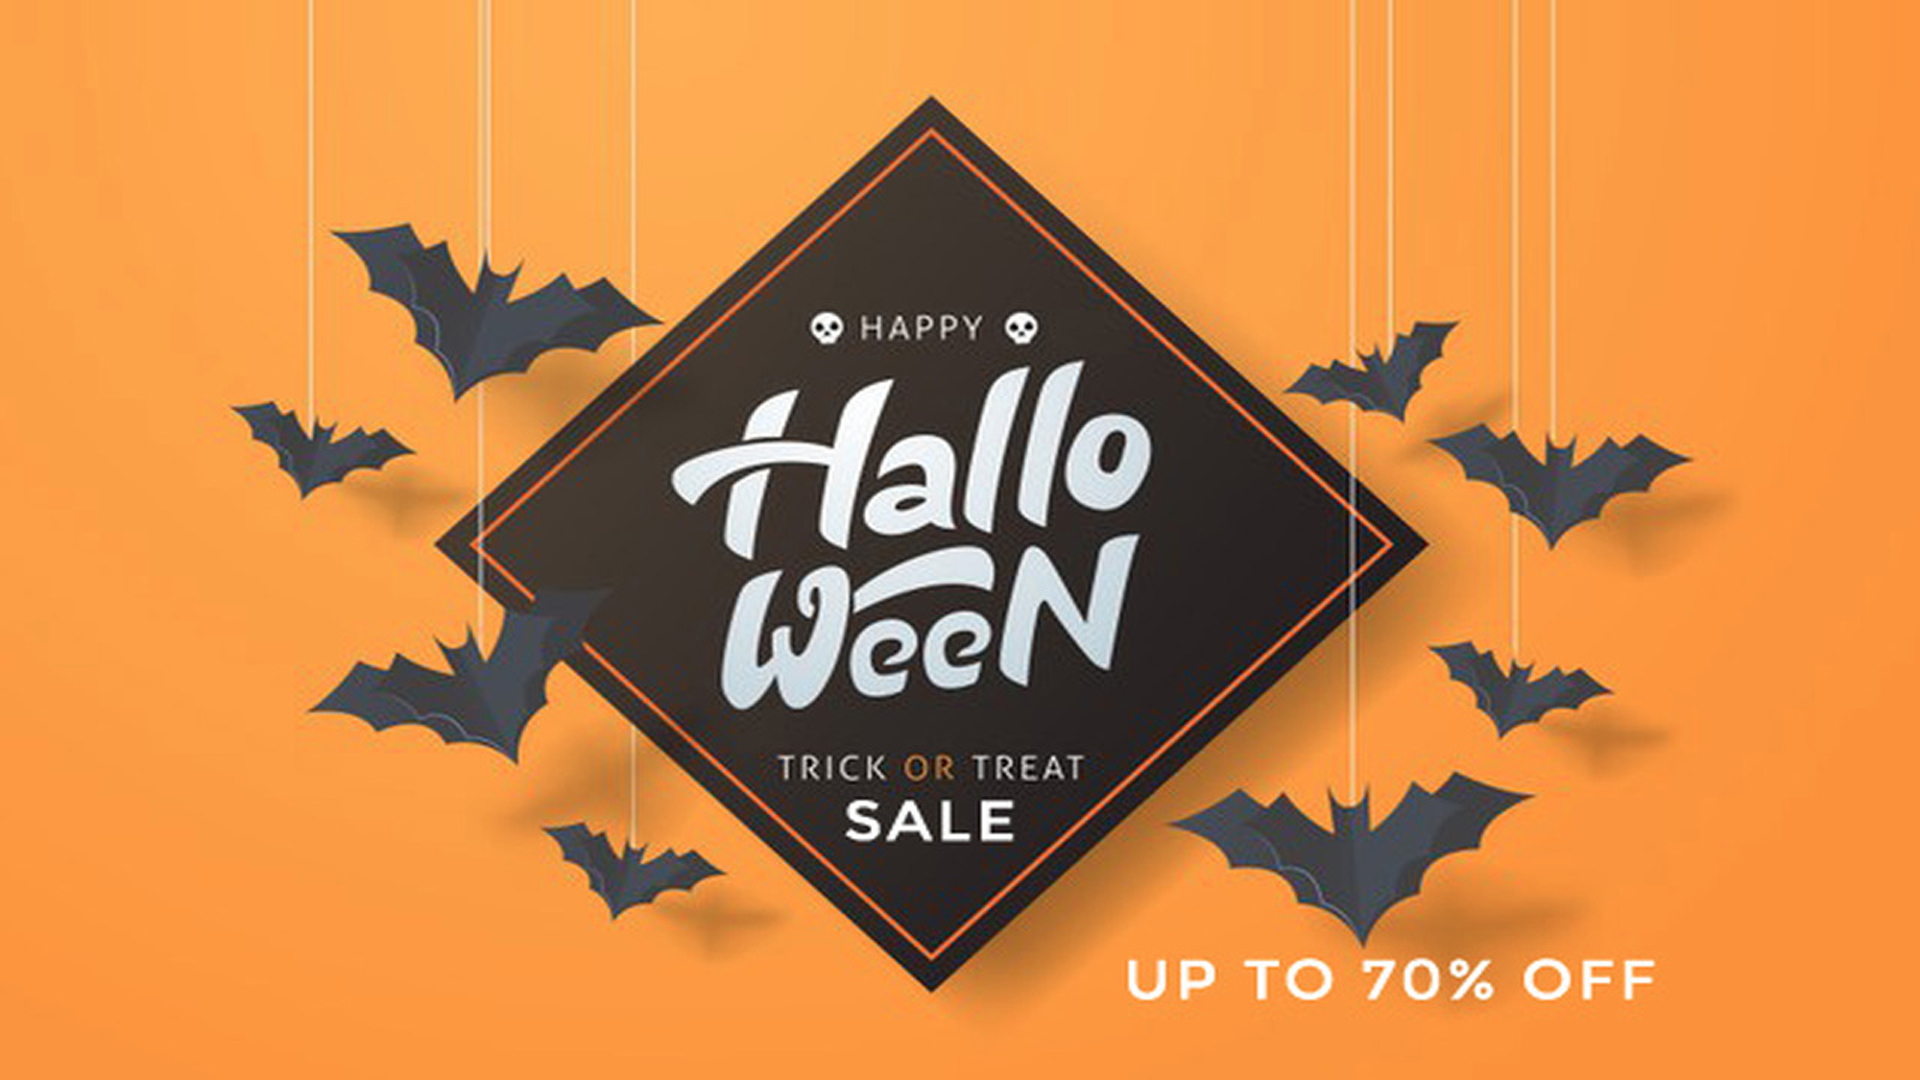 We Sound Effects Halloween Sale Up To 70% OFF [Includes Free SFX]